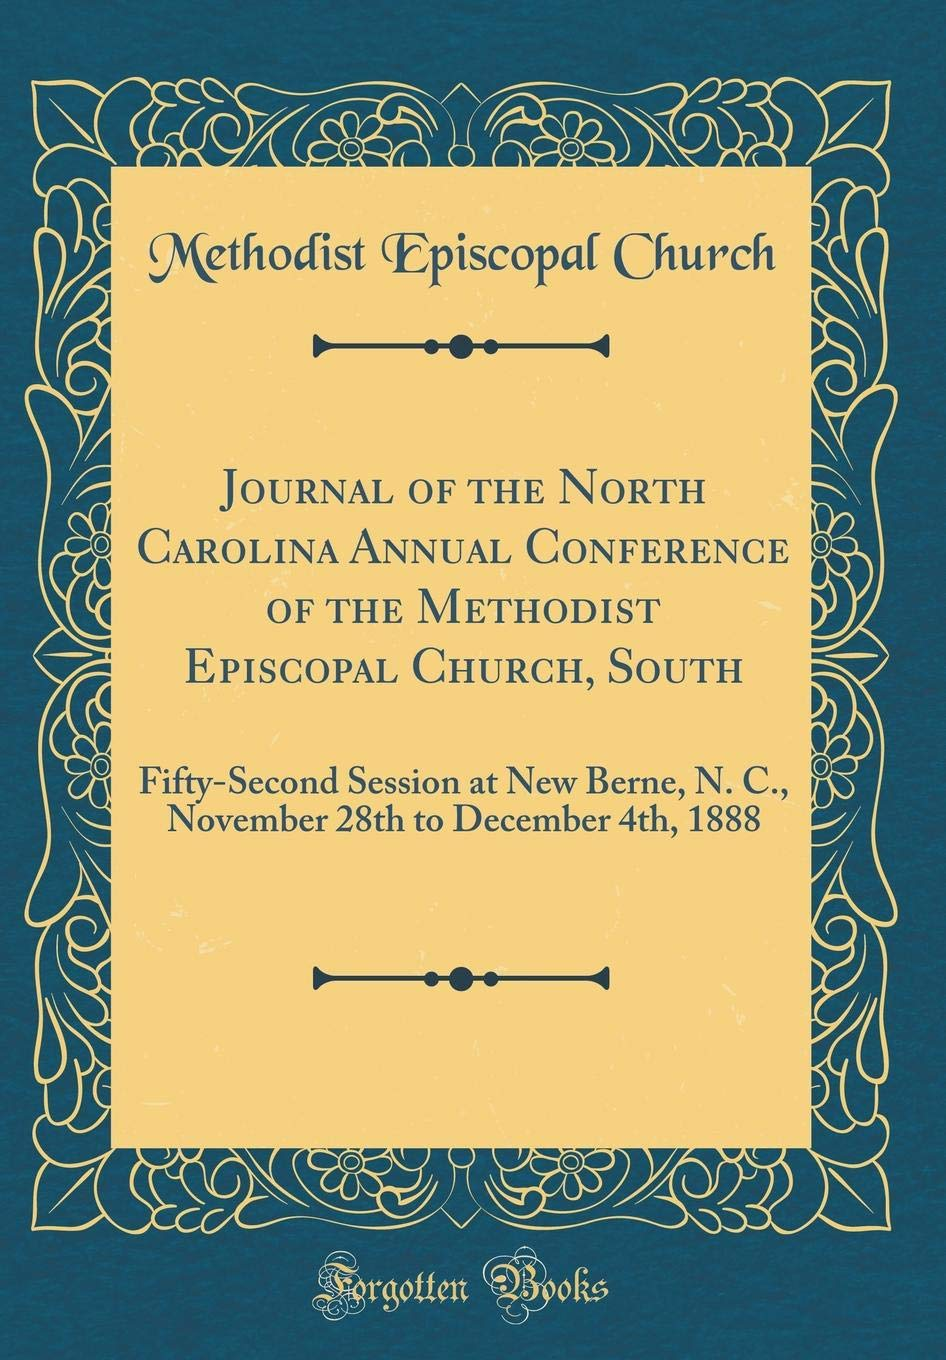 Journal of the North Carolina Annual Conference of the Methodist Episcopal Church, South: Fifty-Second Session at New Berne, N. C., November 28th to December 4th, 1888 (Classic Reprint) PDF